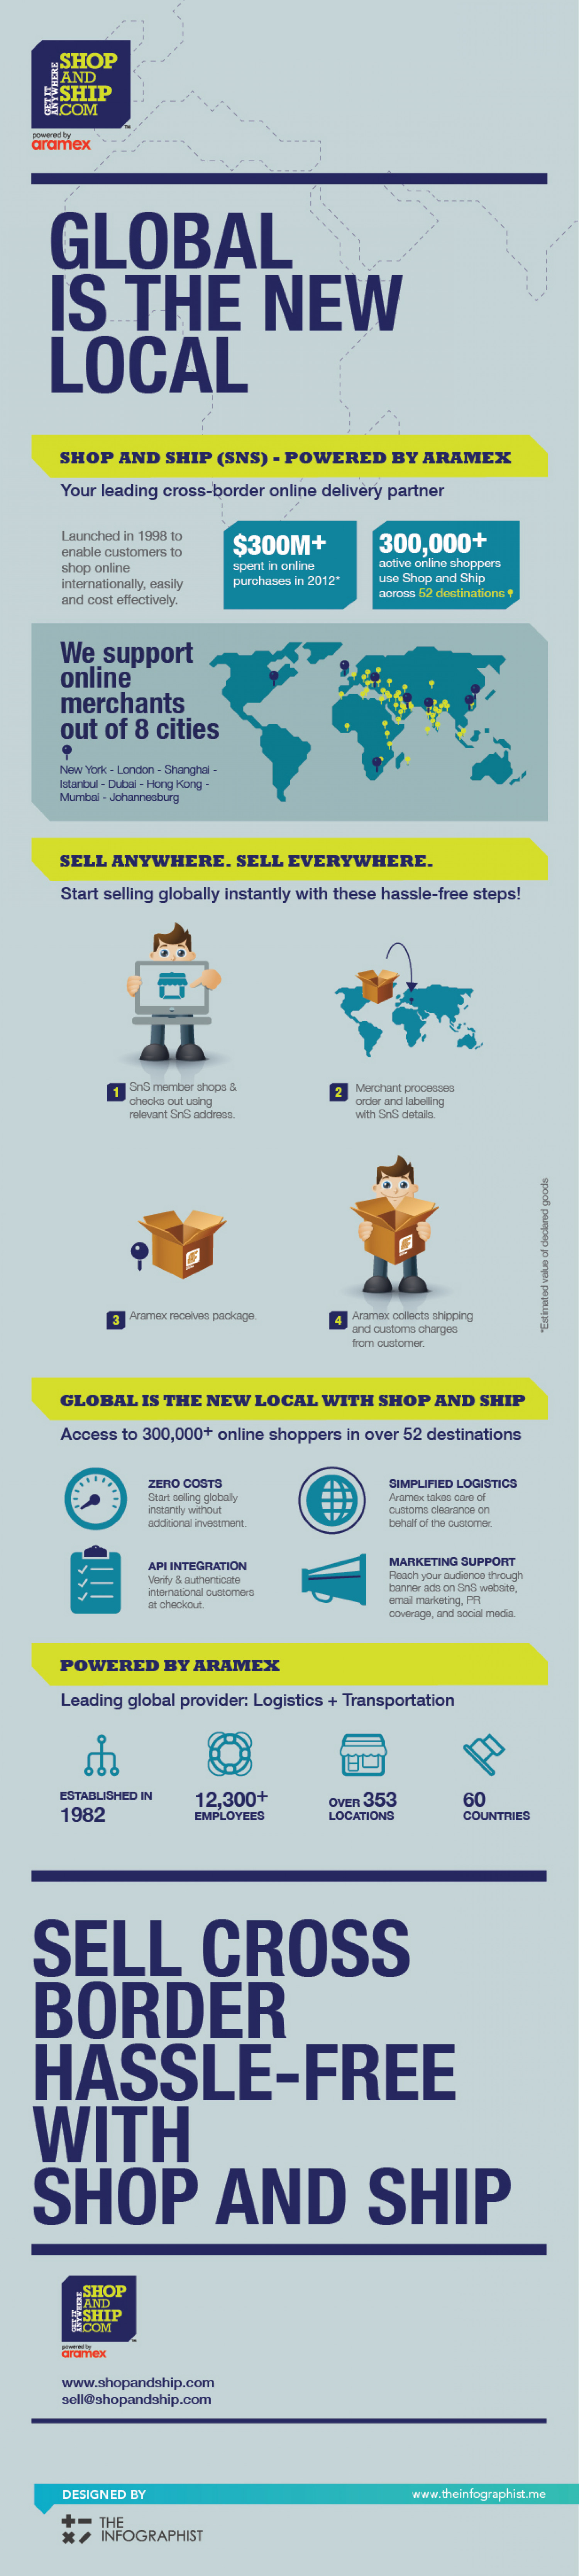 Global is the New Local Infographic